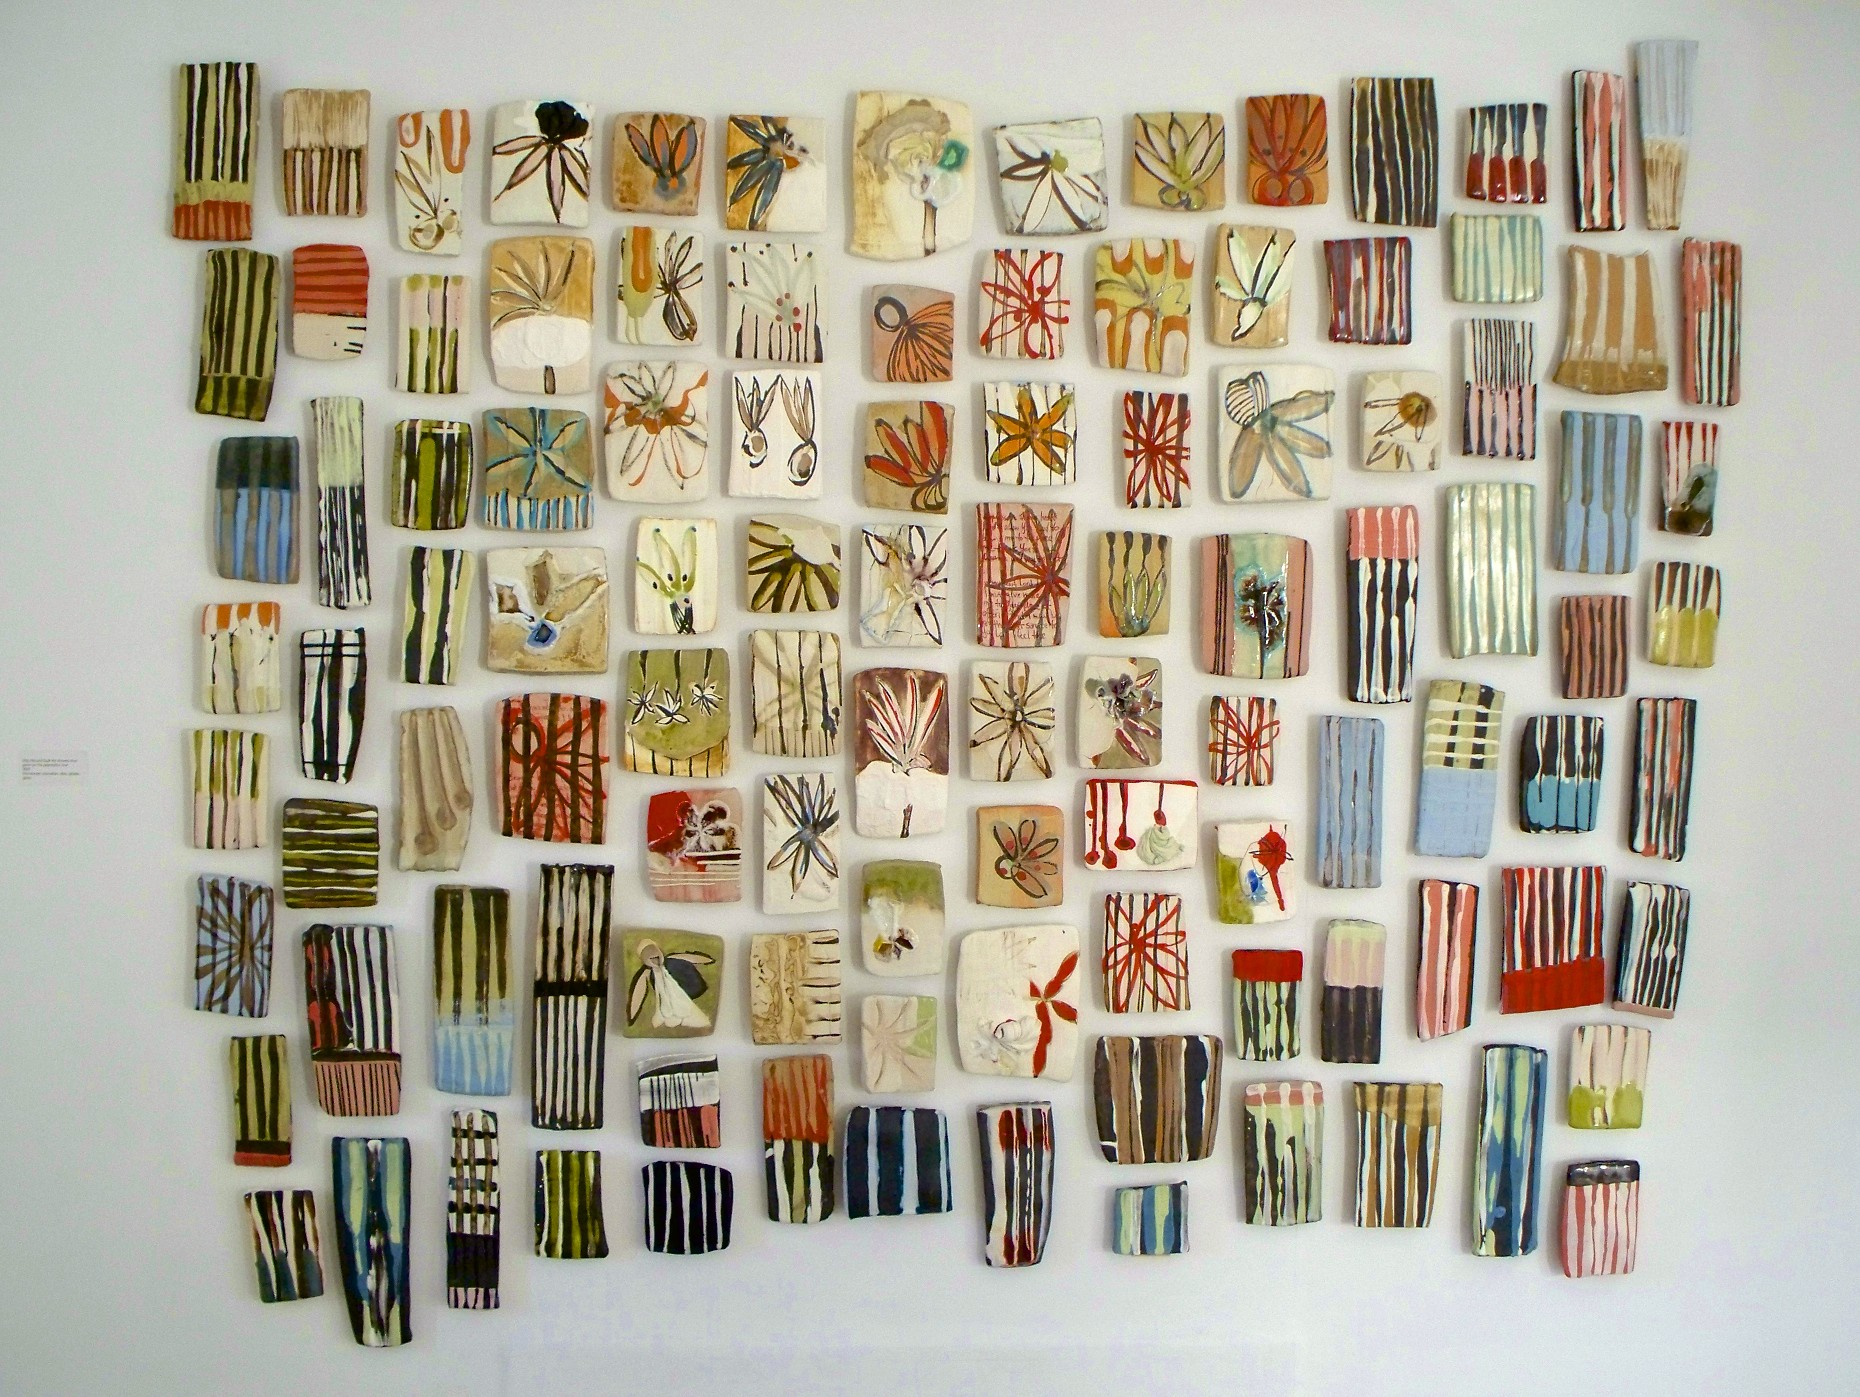 Strip Pieced Quilt #5: 'flowers that grew on the plantation', stoneware, porcelain, colored slips, glass, glaze, 6' x 7' (dimensions variable), cone 6 oxidation, 2009